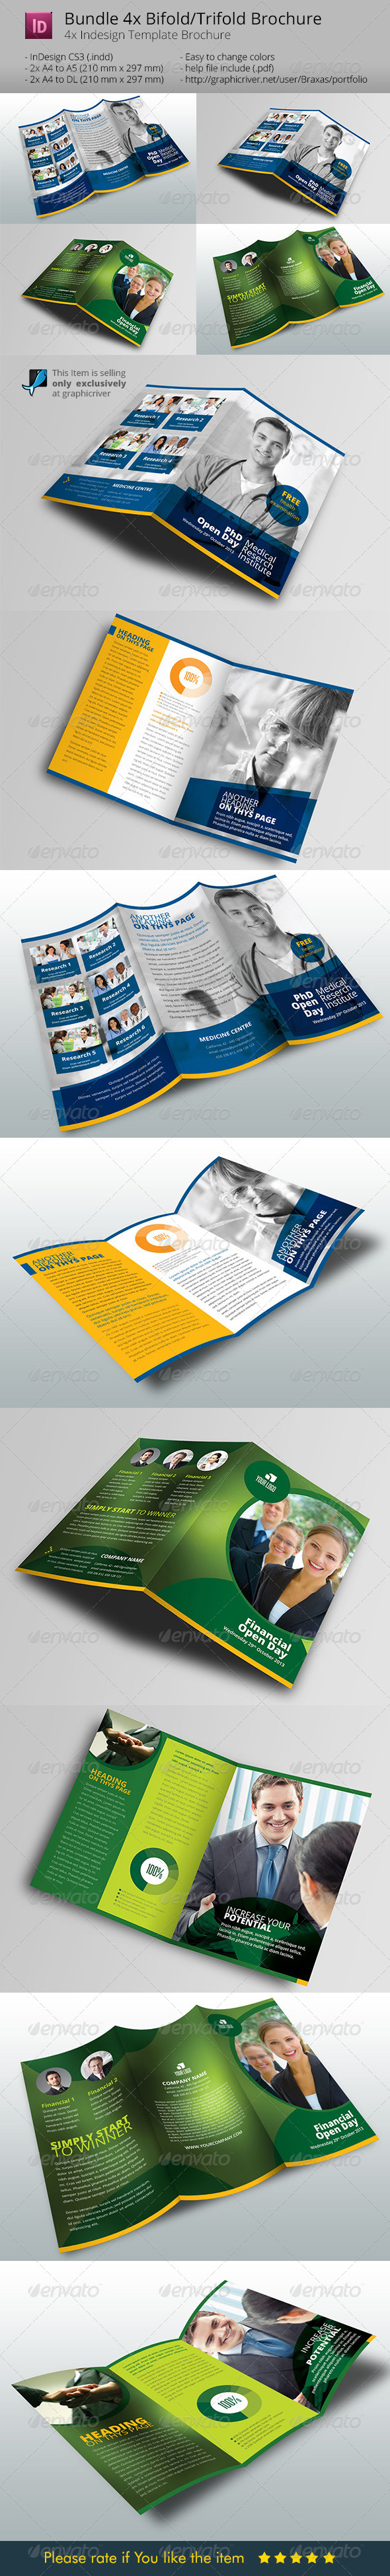 GraphicRiver Bundle 4x Brochure Design 6394223